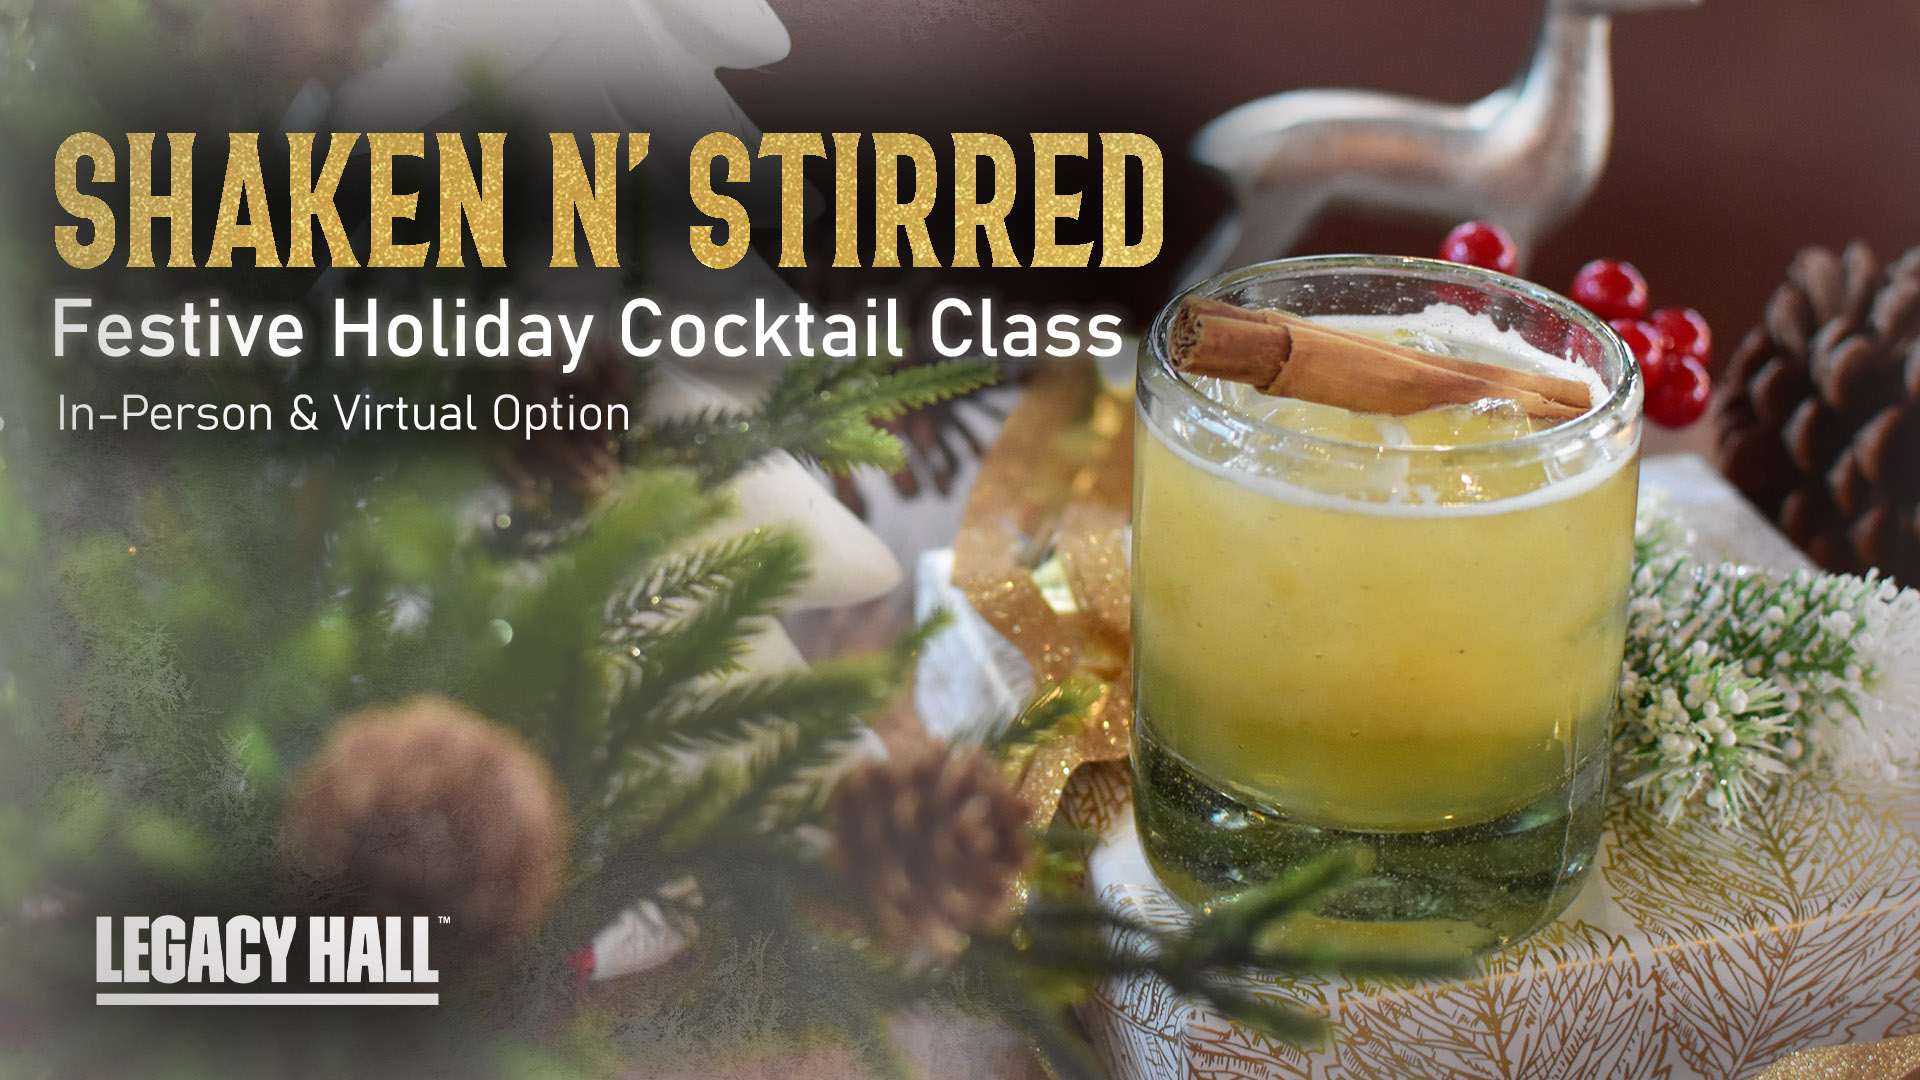 Promo image of Shaken N' Stirred: Festive Cocktails Class